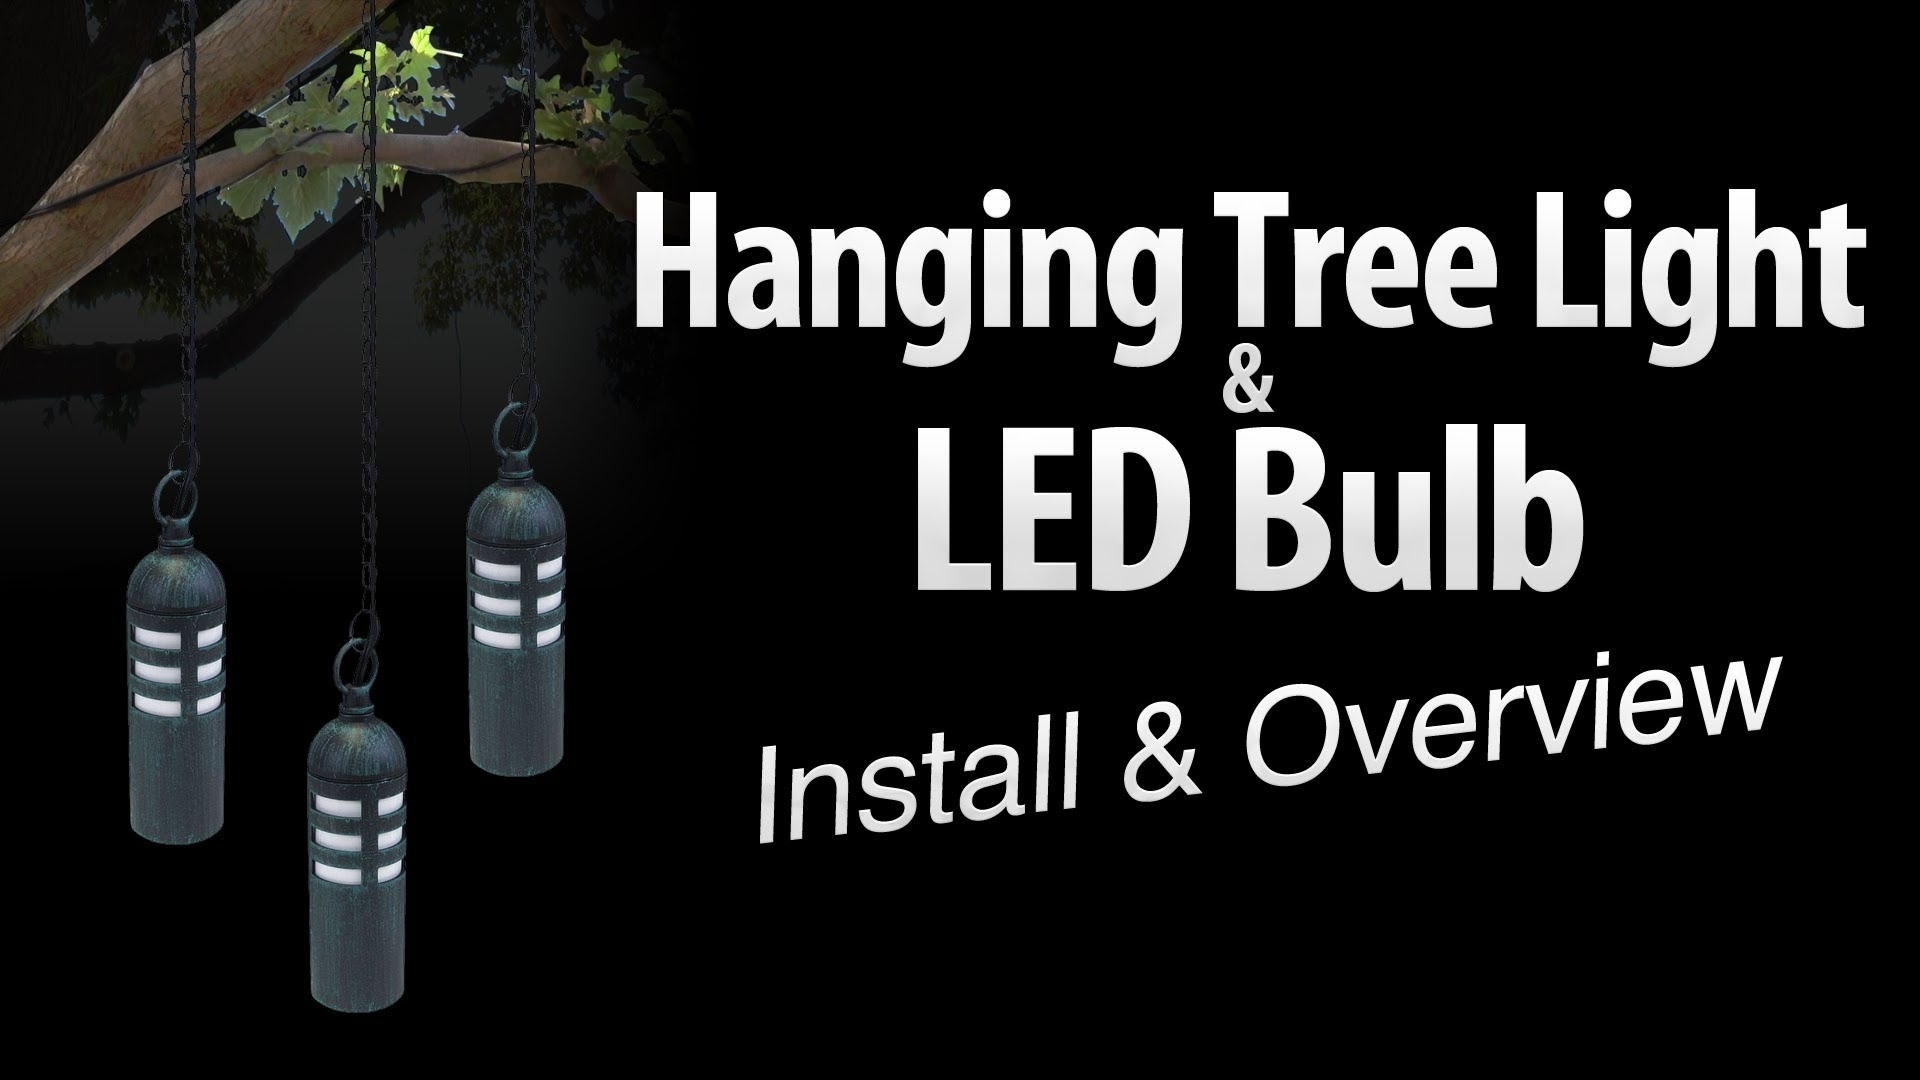 Hanging Tree Light & Led Light Bulb Install & Overviewtotal Intended For Outdoor Hanging Tree Lanterns (View 15 of 15)